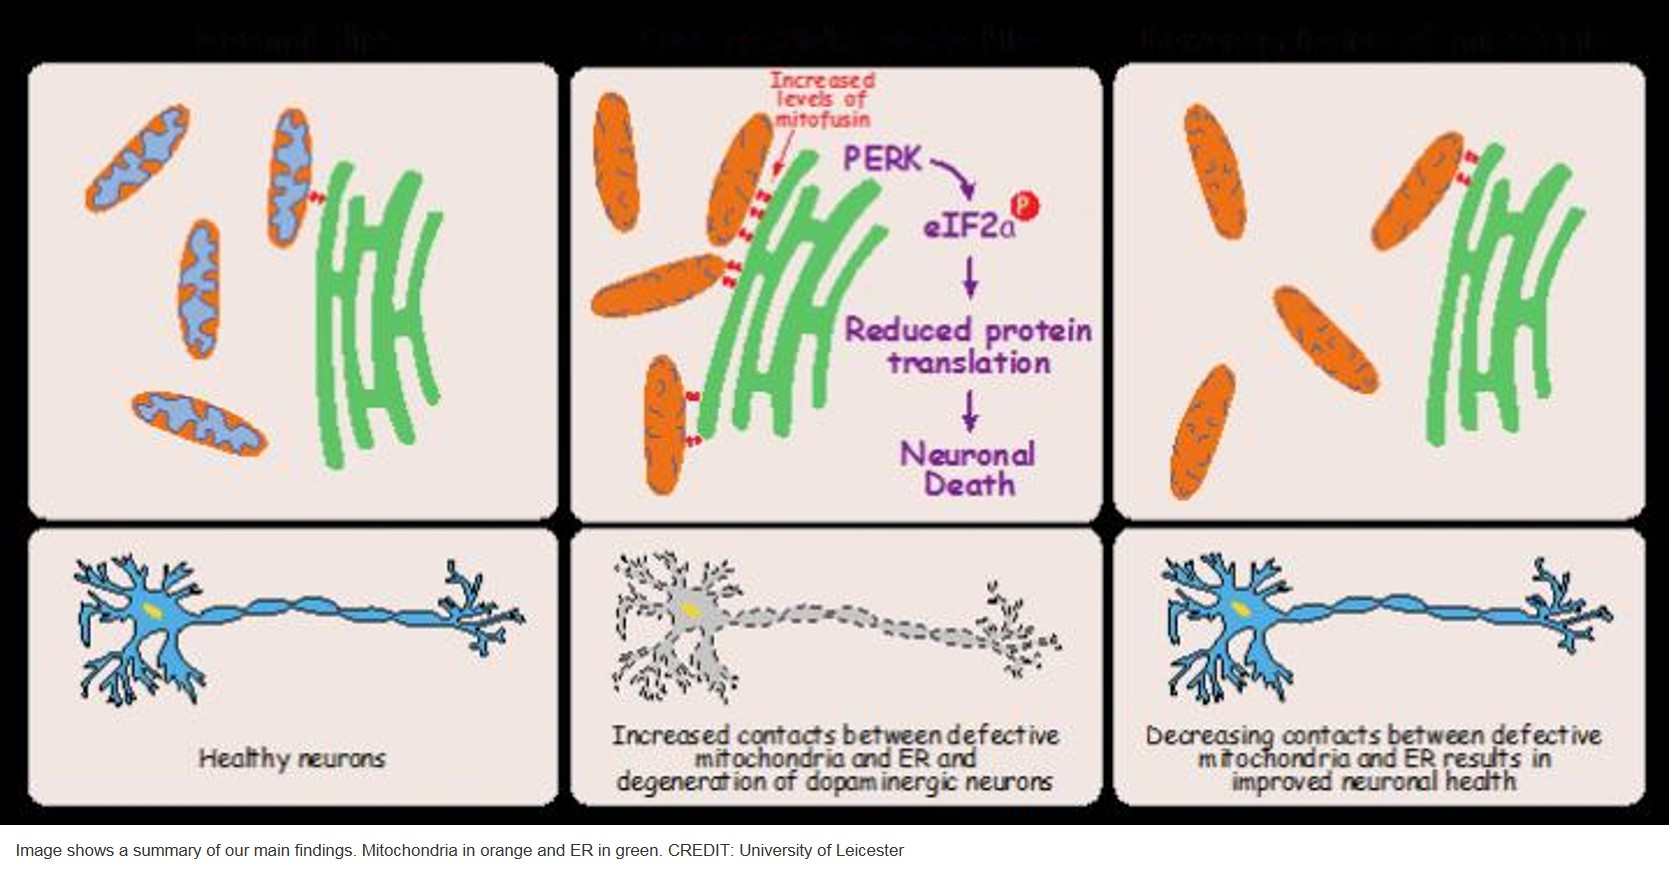 New insight into Parkinson's disease!